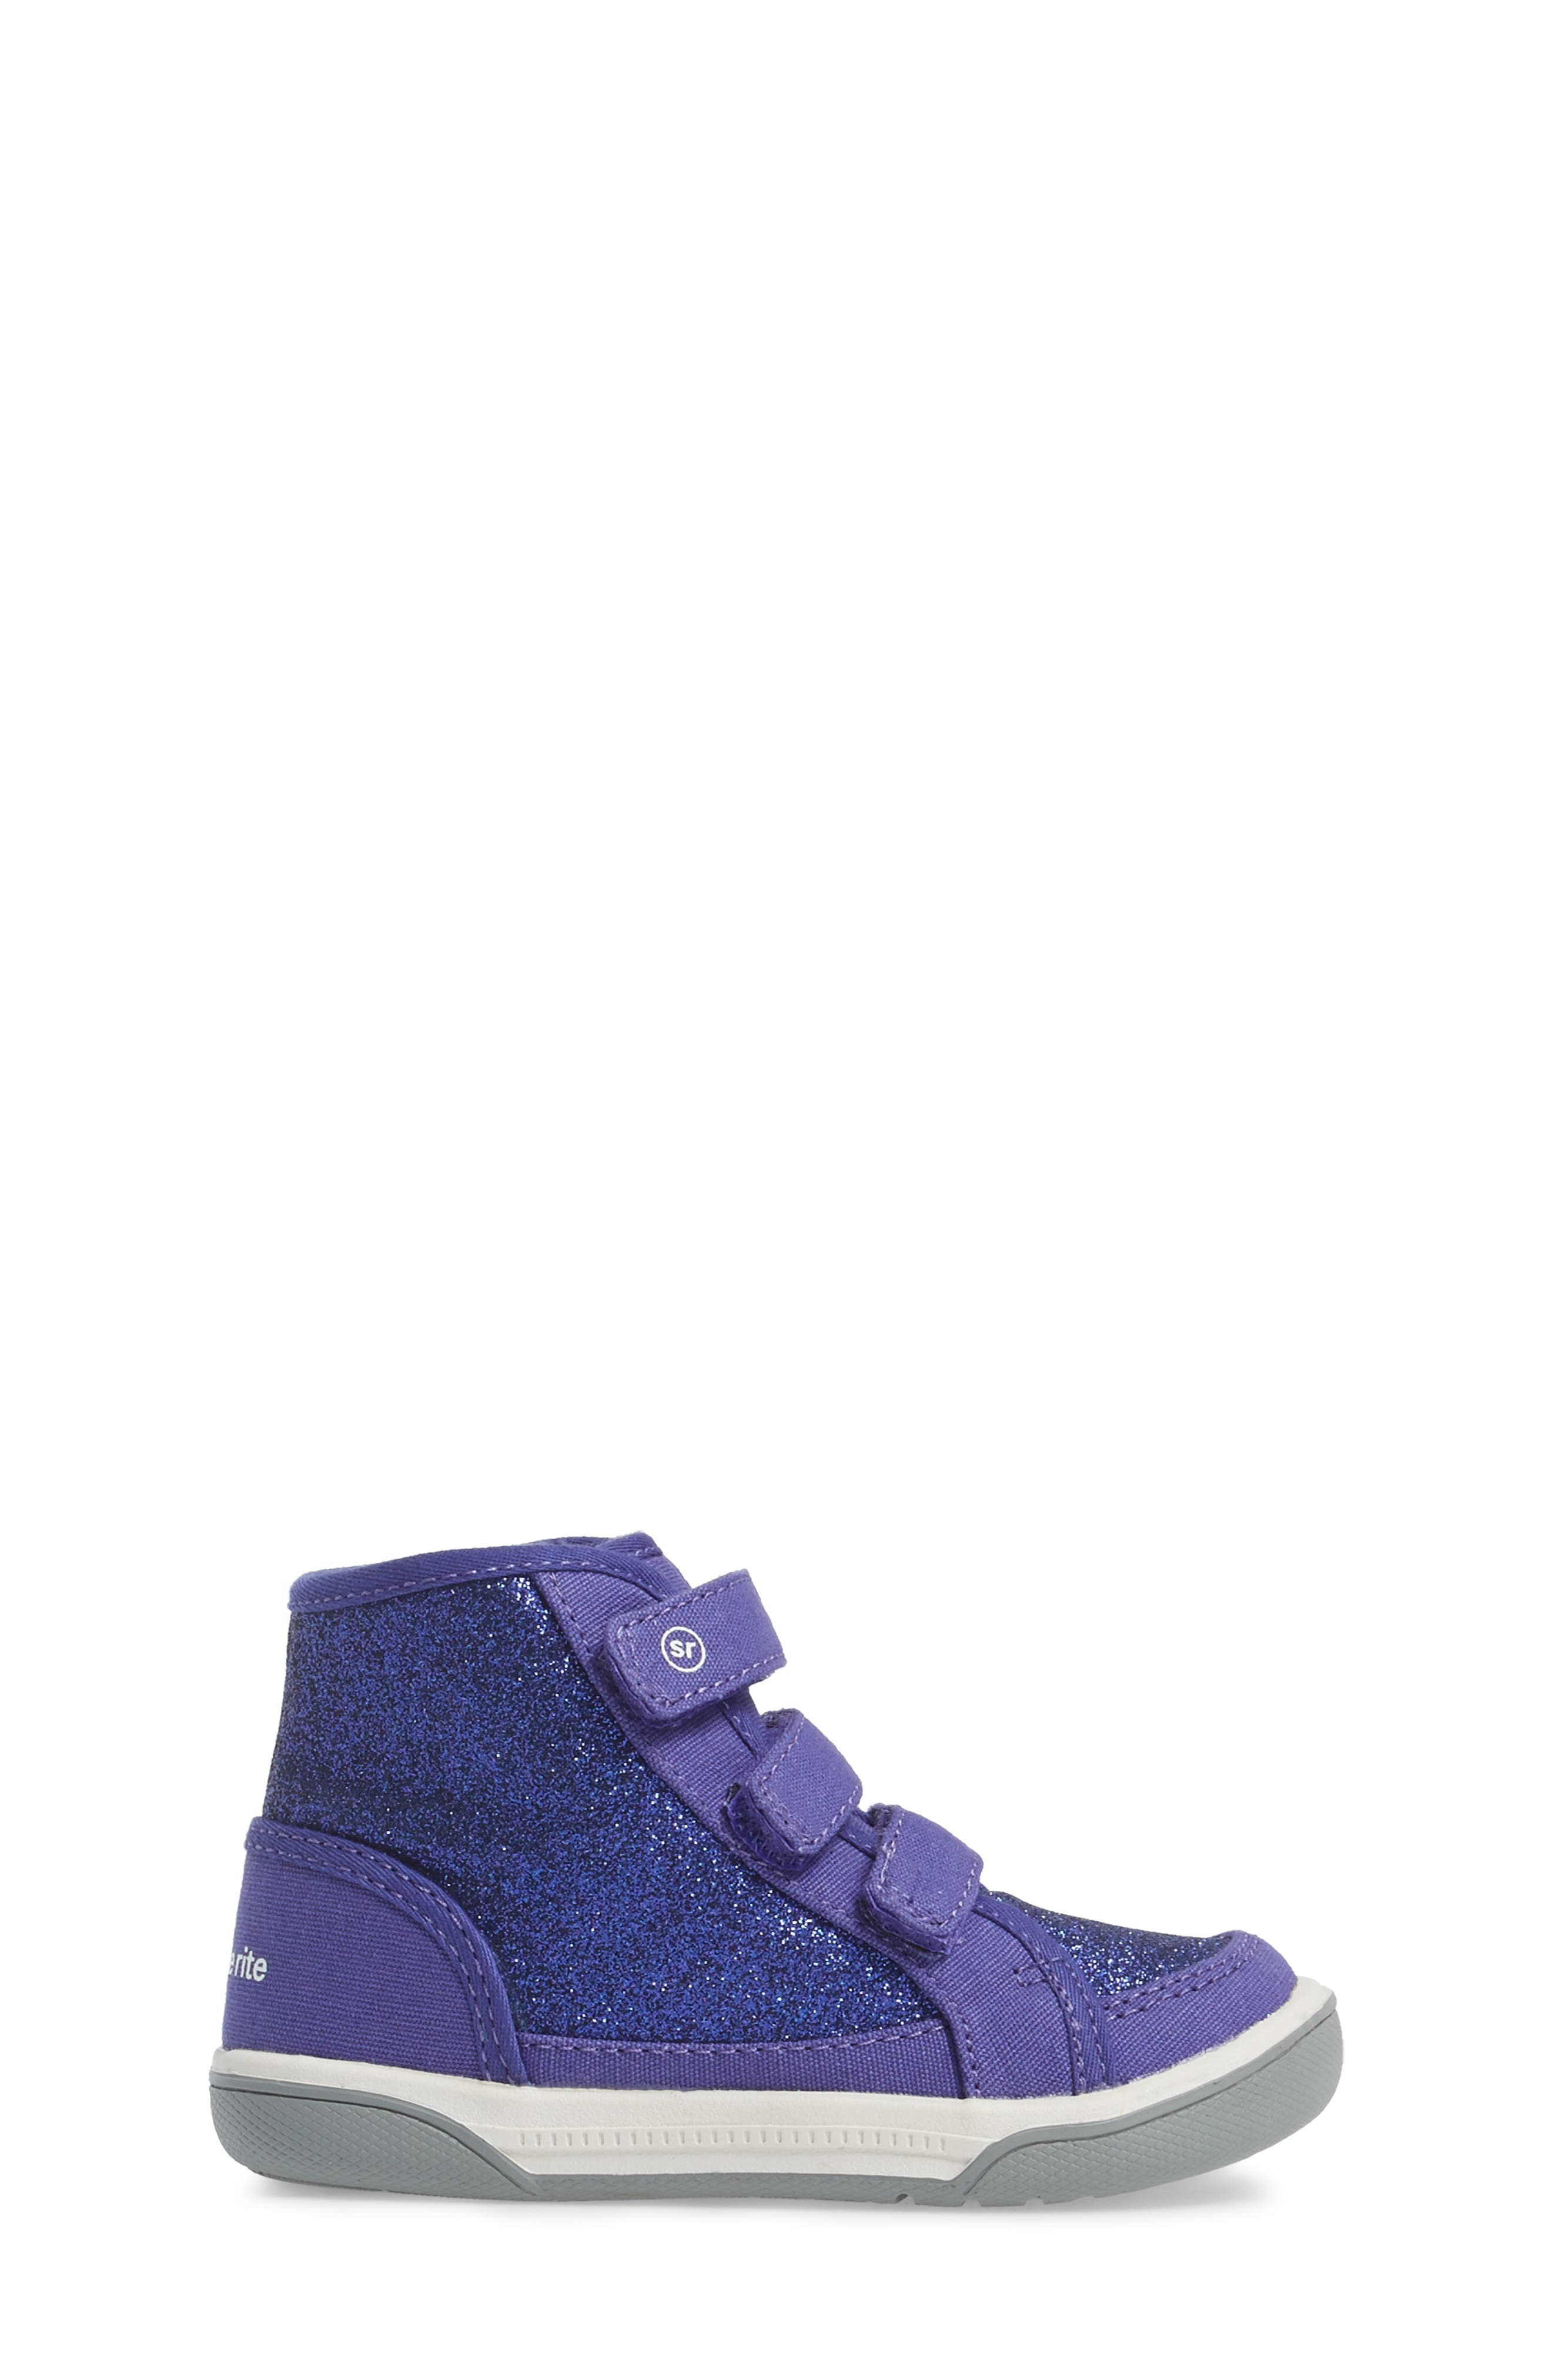 Ellis Glitter High Top Sneaker,                             Alternate thumbnail 3, color,                             Purple